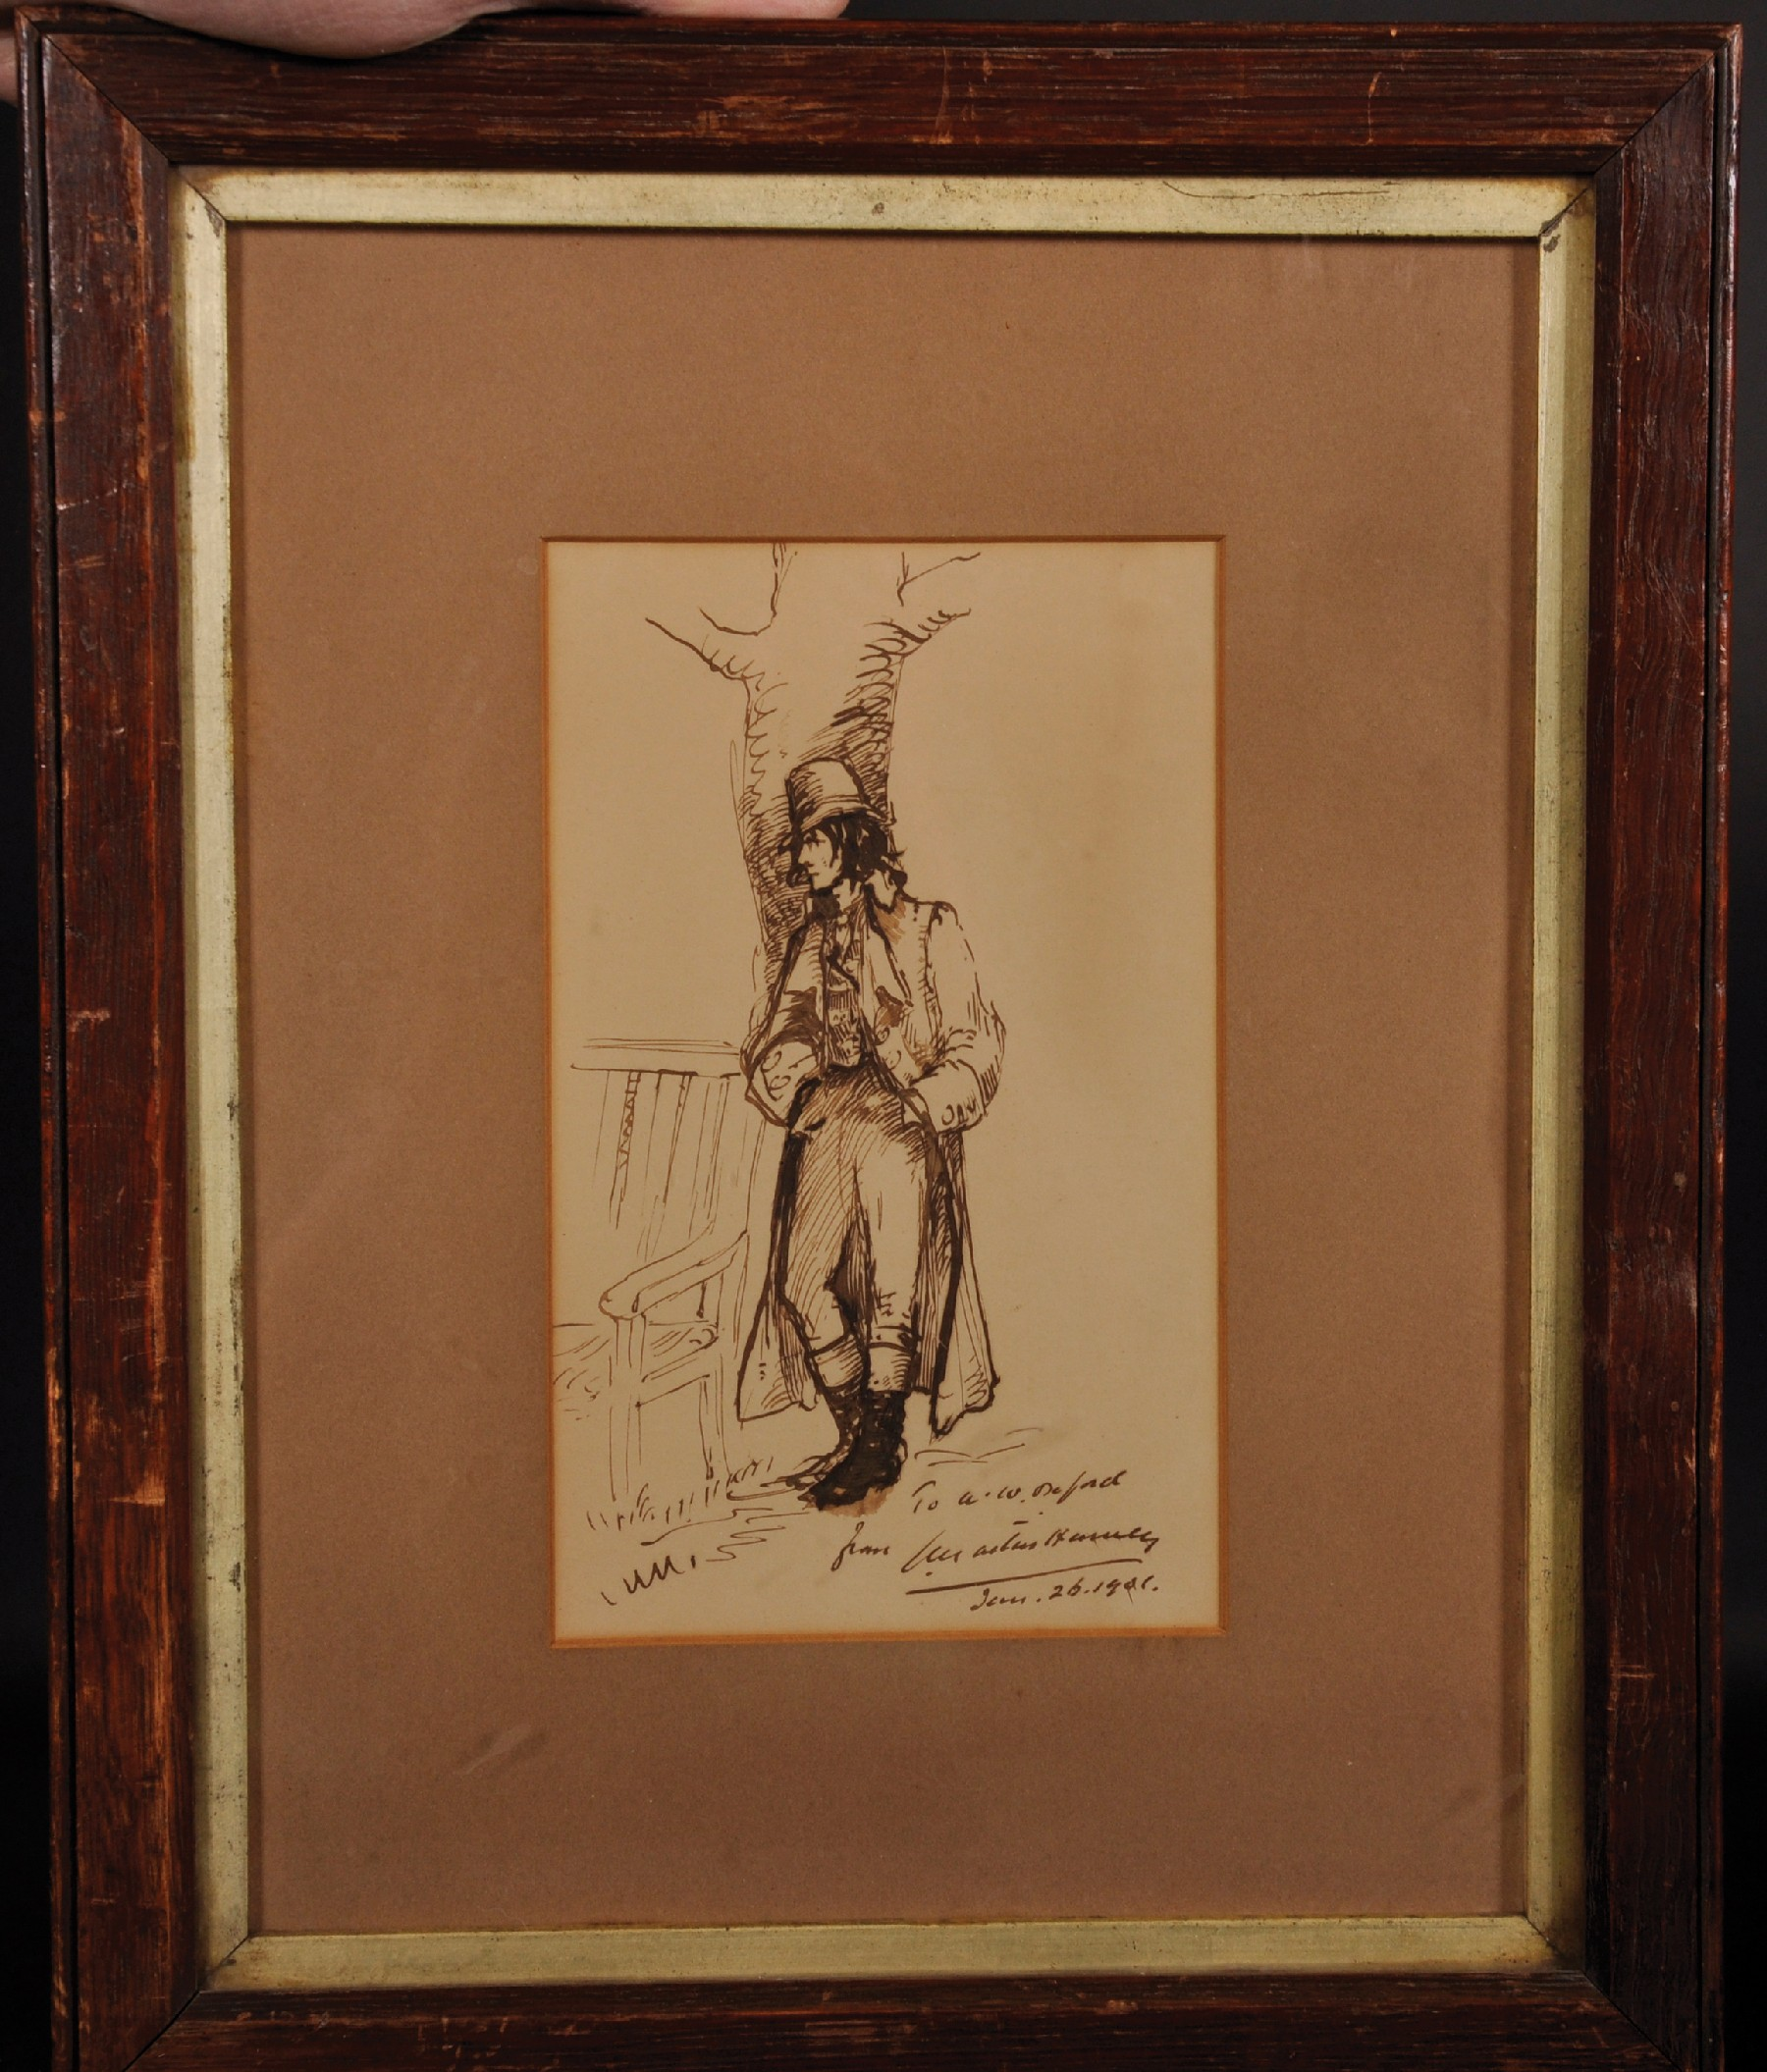 Augustus Hawley (19th- 20th Century) British. Study of a Horseman leaning against a Tree by a Bench, - Image 2 of 4